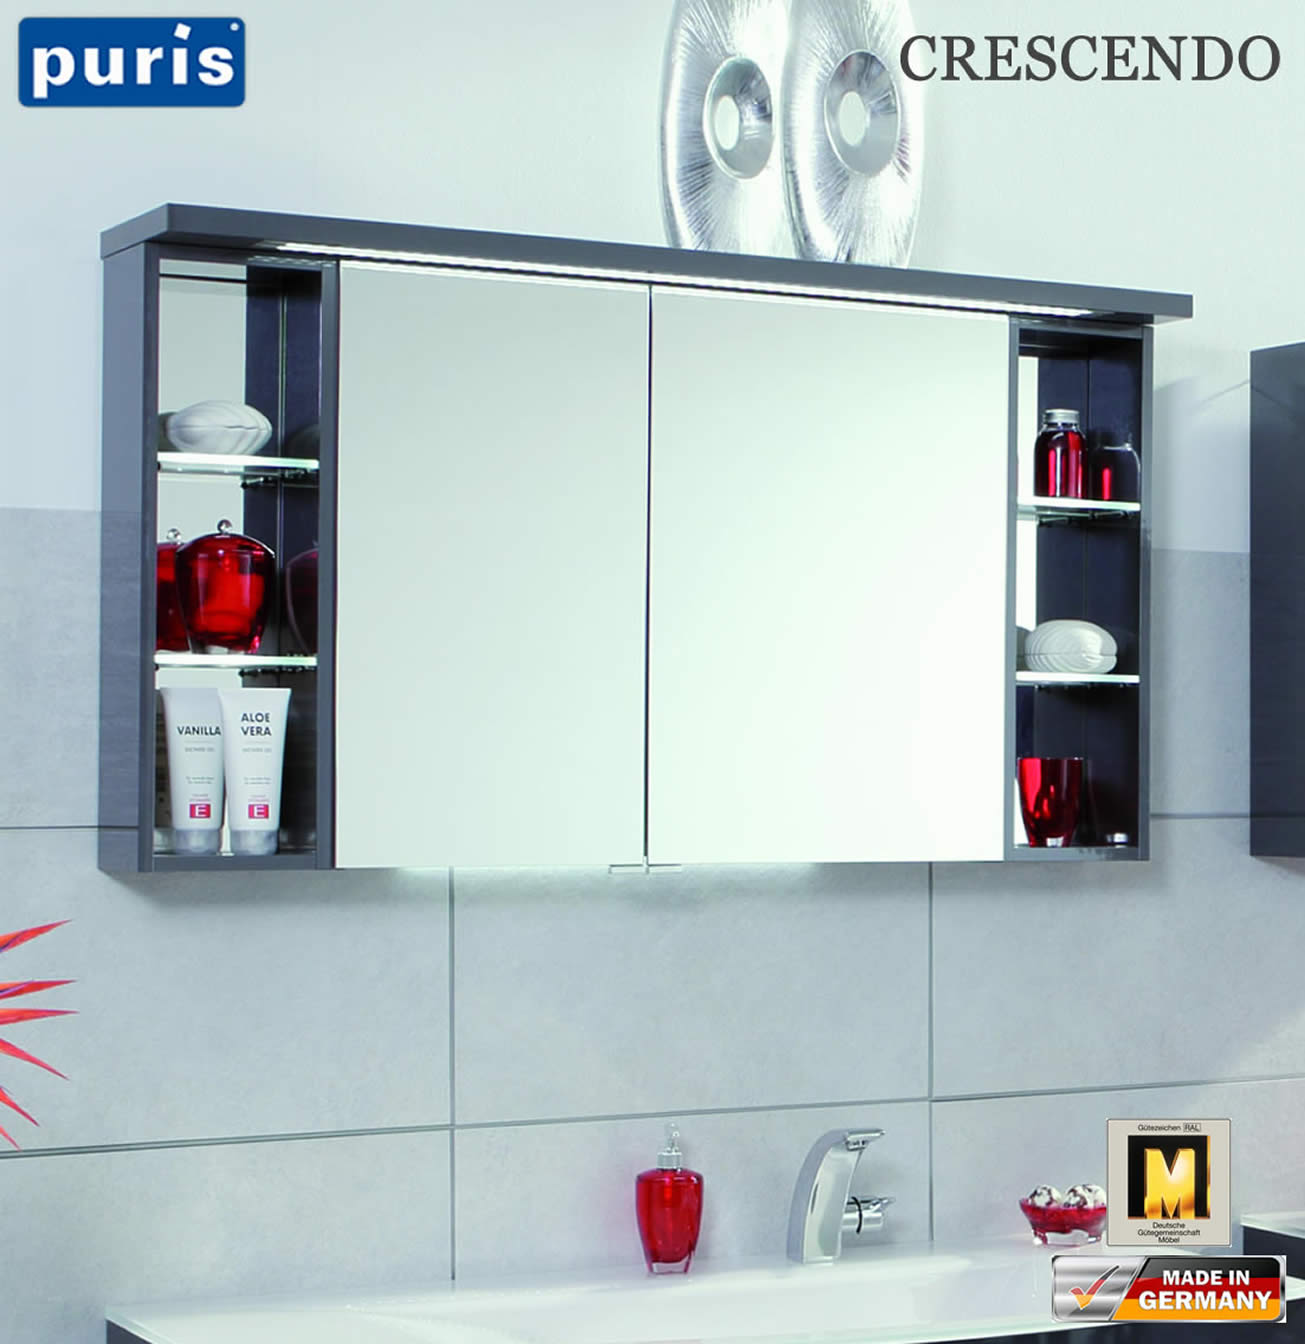 puris crescendo led spiegelschrank 120 cm s2a431226l impuls home. Black Bedroom Furniture Sets. Home Design Ideas